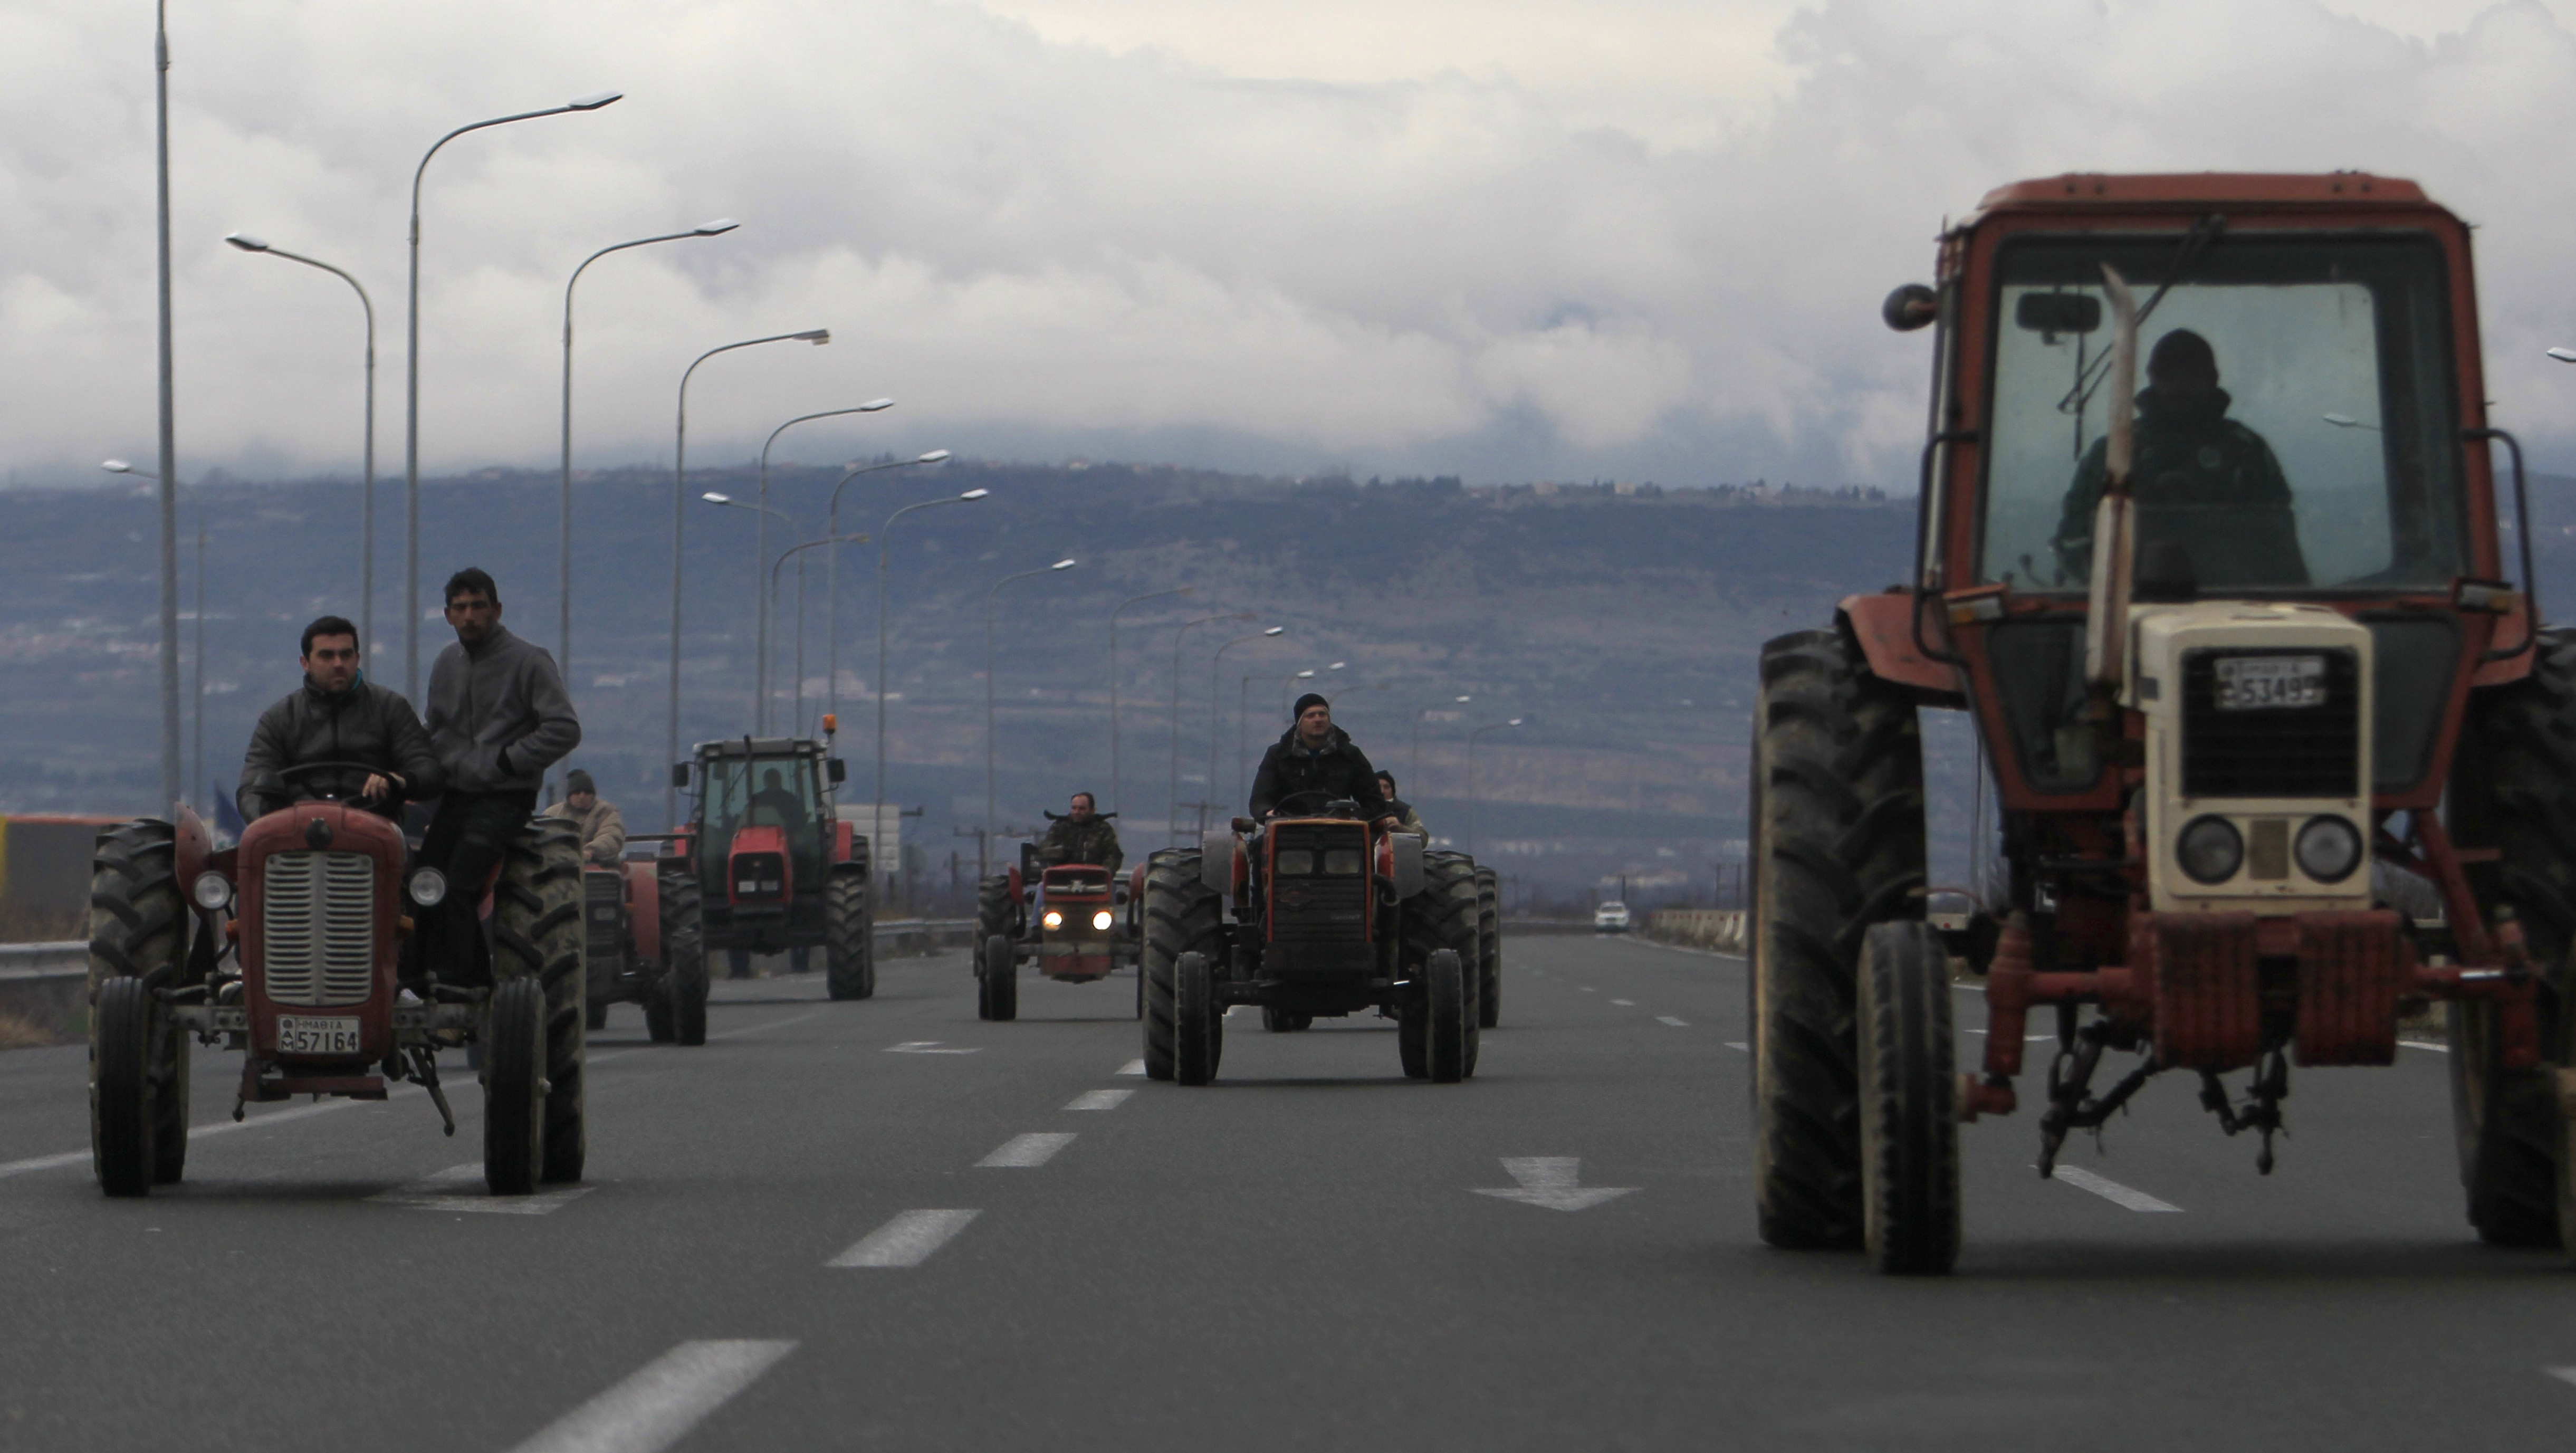 """Farmers drive their tractors on Egnatia highway near the northern Greek city of Veria, Greece, on Saturday, Jan. 26, 2013. Farmers from Veria used their tractors to block Greece's northern highway """"Egnatia"""" for about an hour. Some farmers are complaining they have not yet received state subsidies while others say compensation for natural disasters that have hurt their crops is too low.(AP Photo/Nikolas Giakoumidis)"""